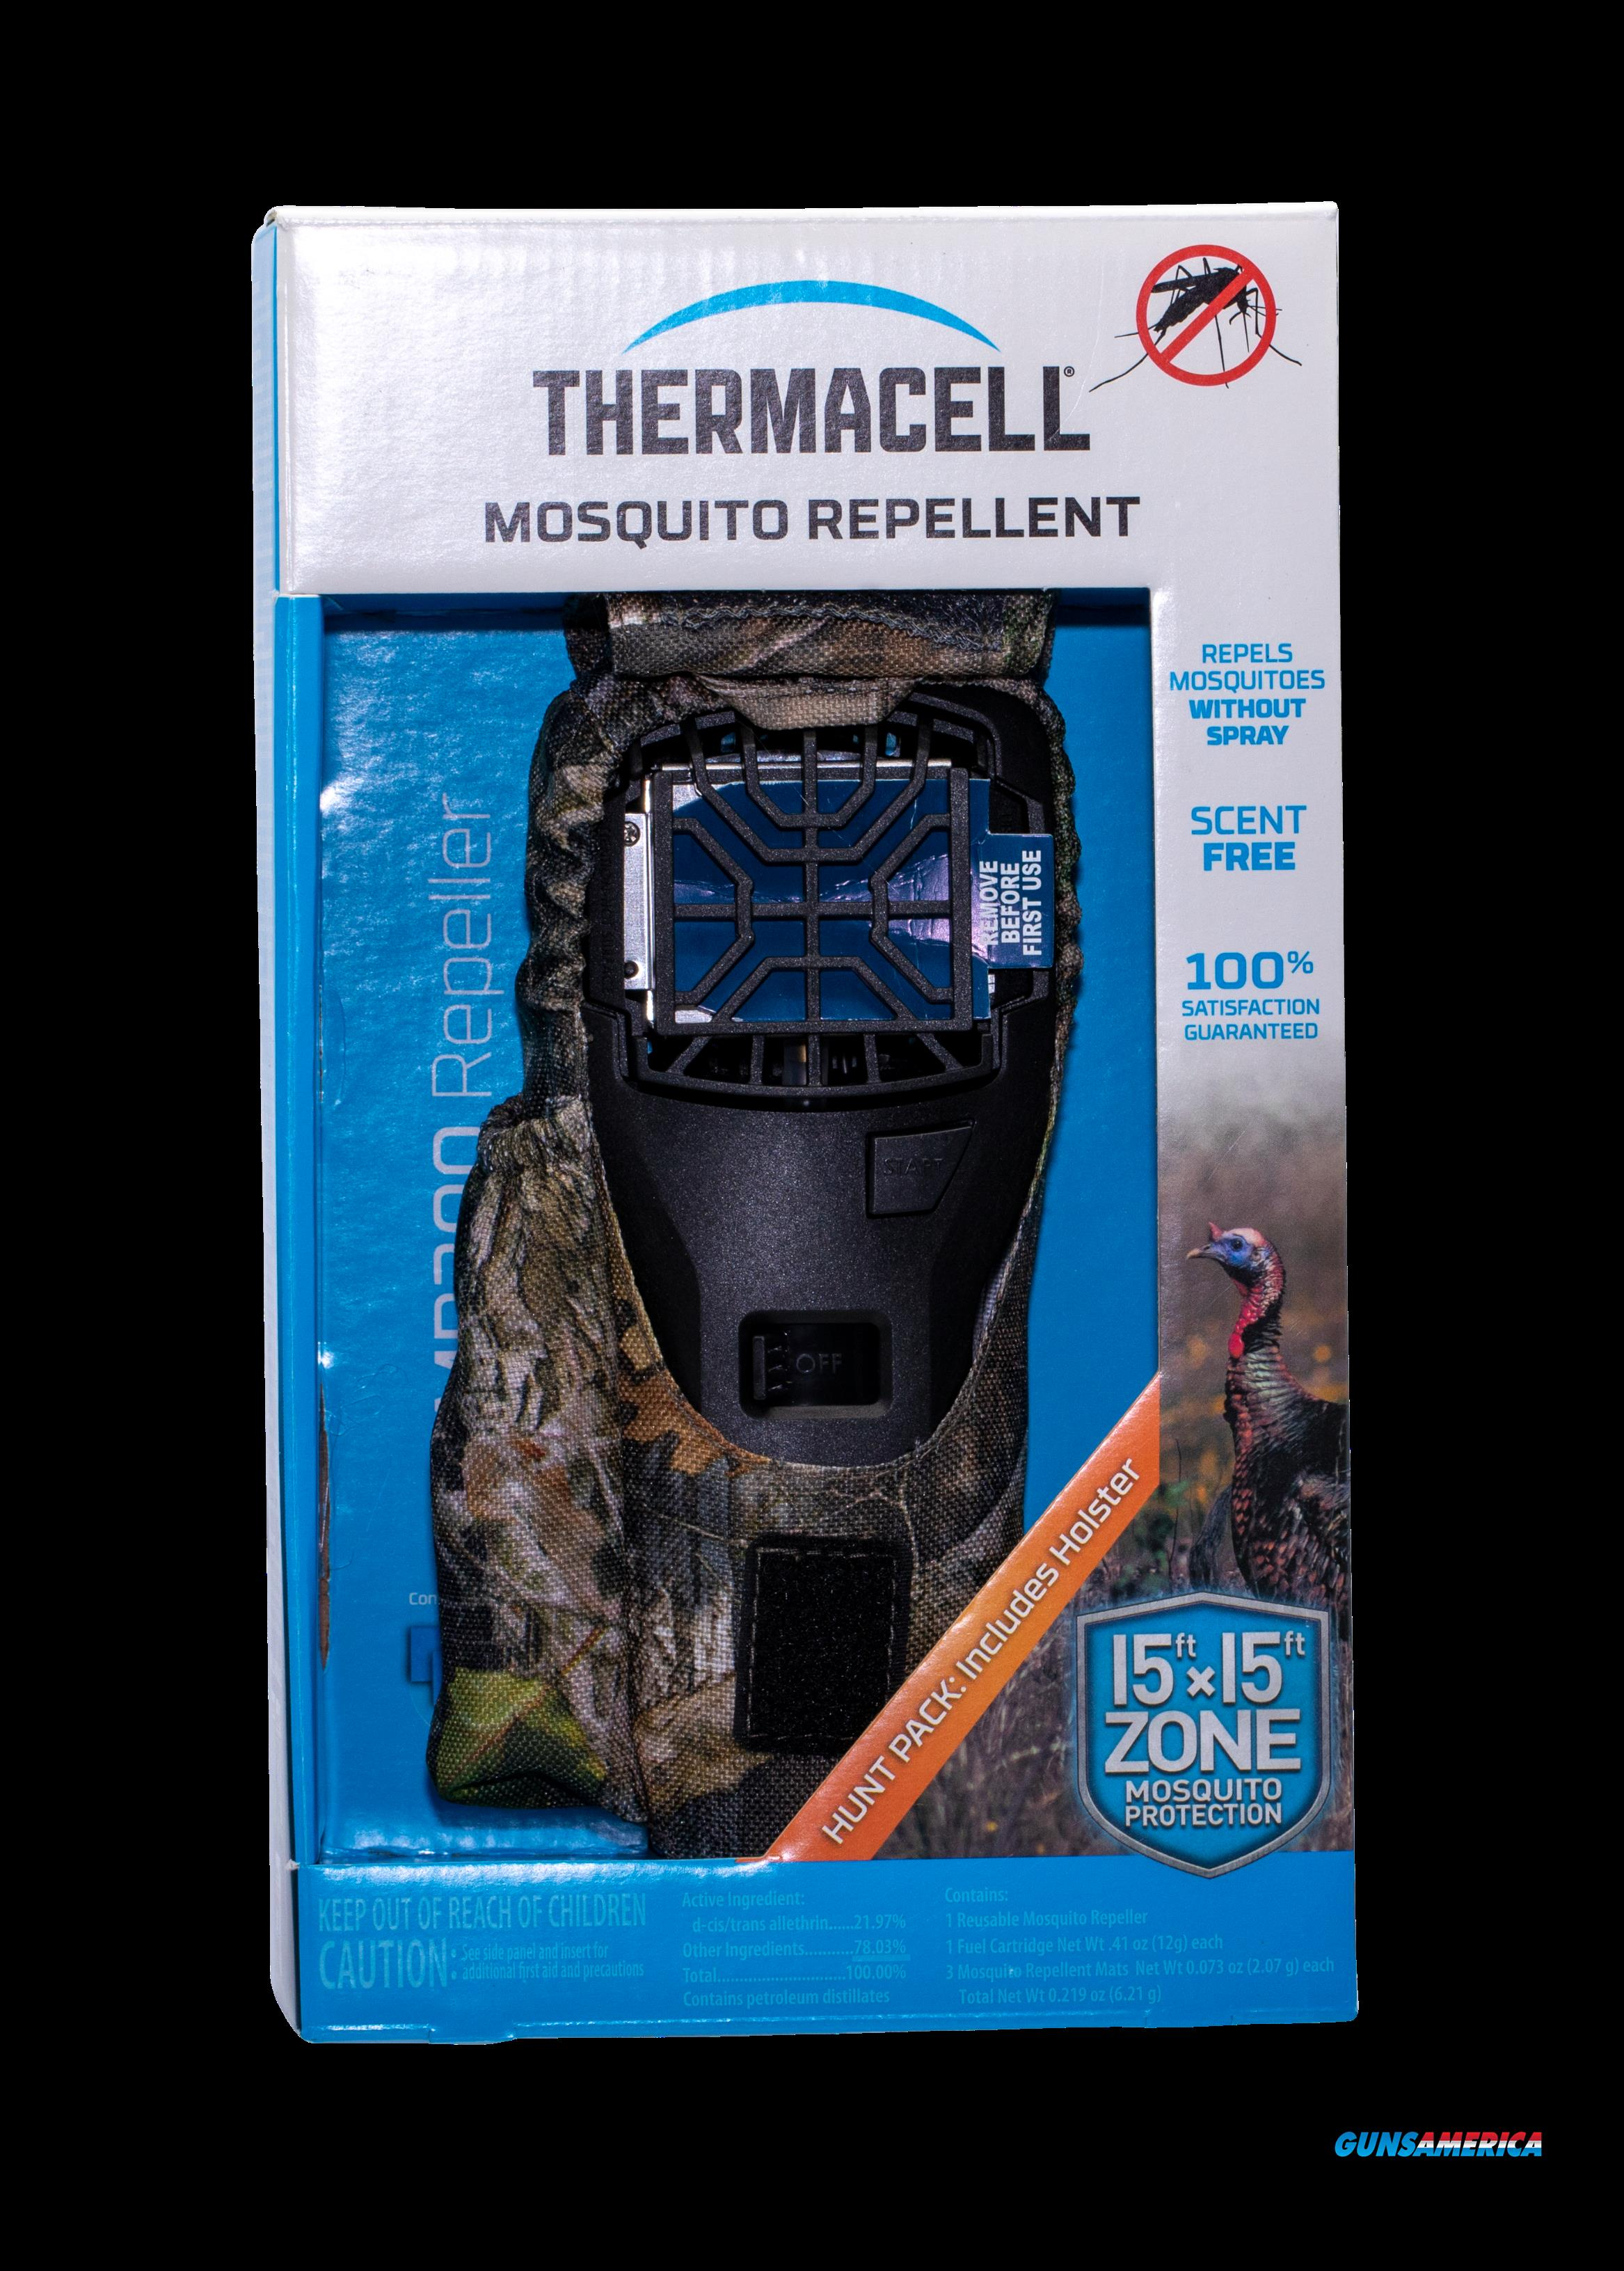 Thermacell Mr300, Ther Mr300f Portable Mosquito Repeller Hunt Pack  Guns > Pistols > 1911 Pistol Copies (non-Colt)